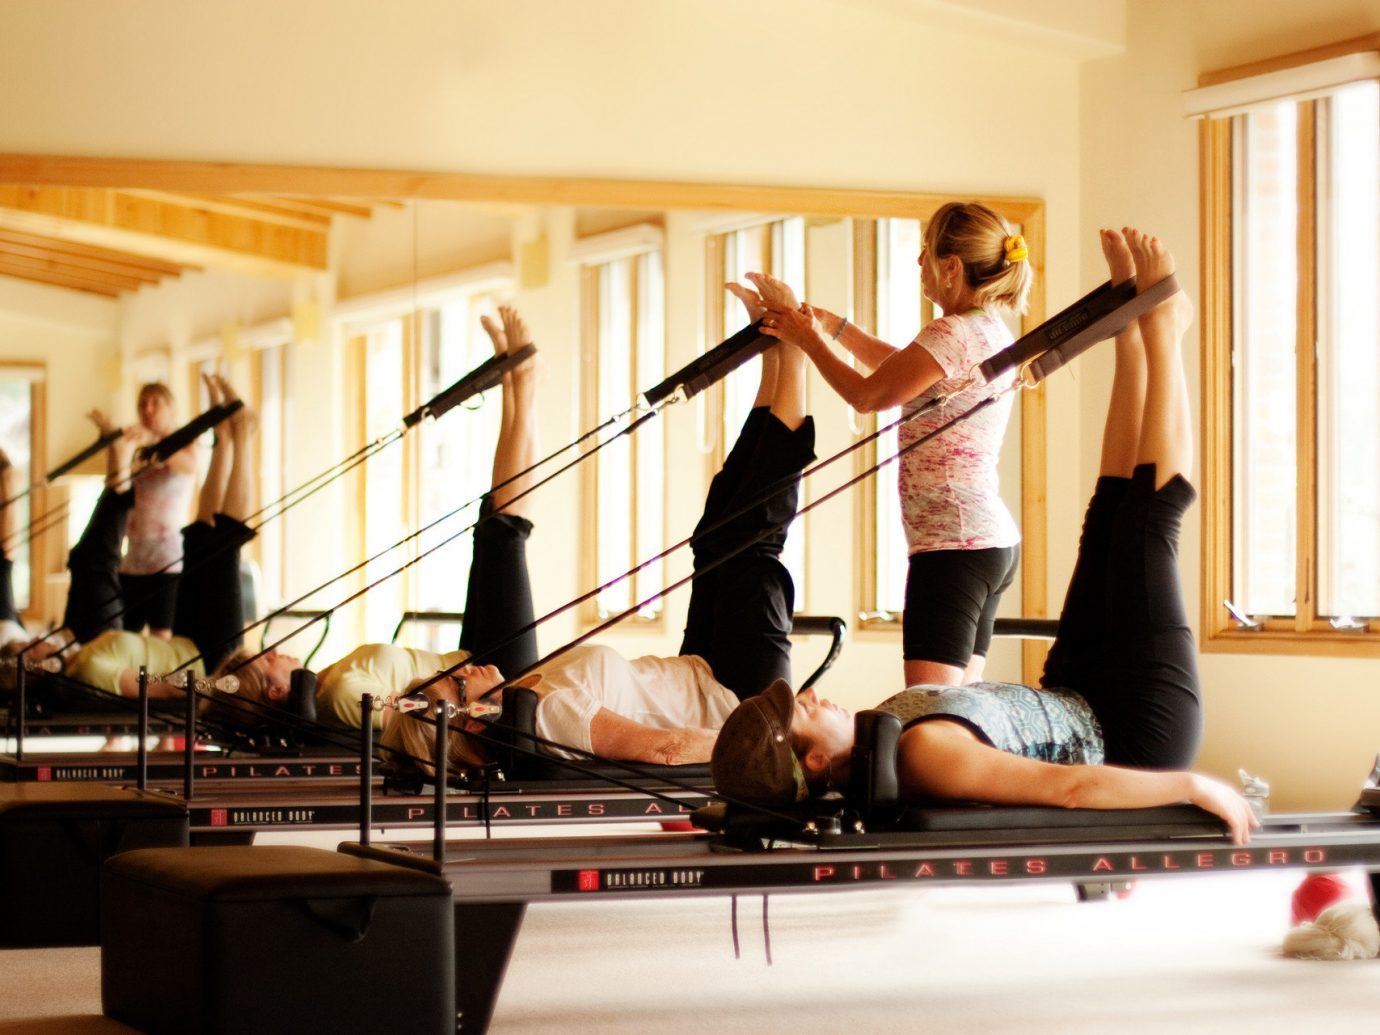 Health + Wellness Hotels Yoga Retreats wall indoor person room sports physical fitness performance art pilates